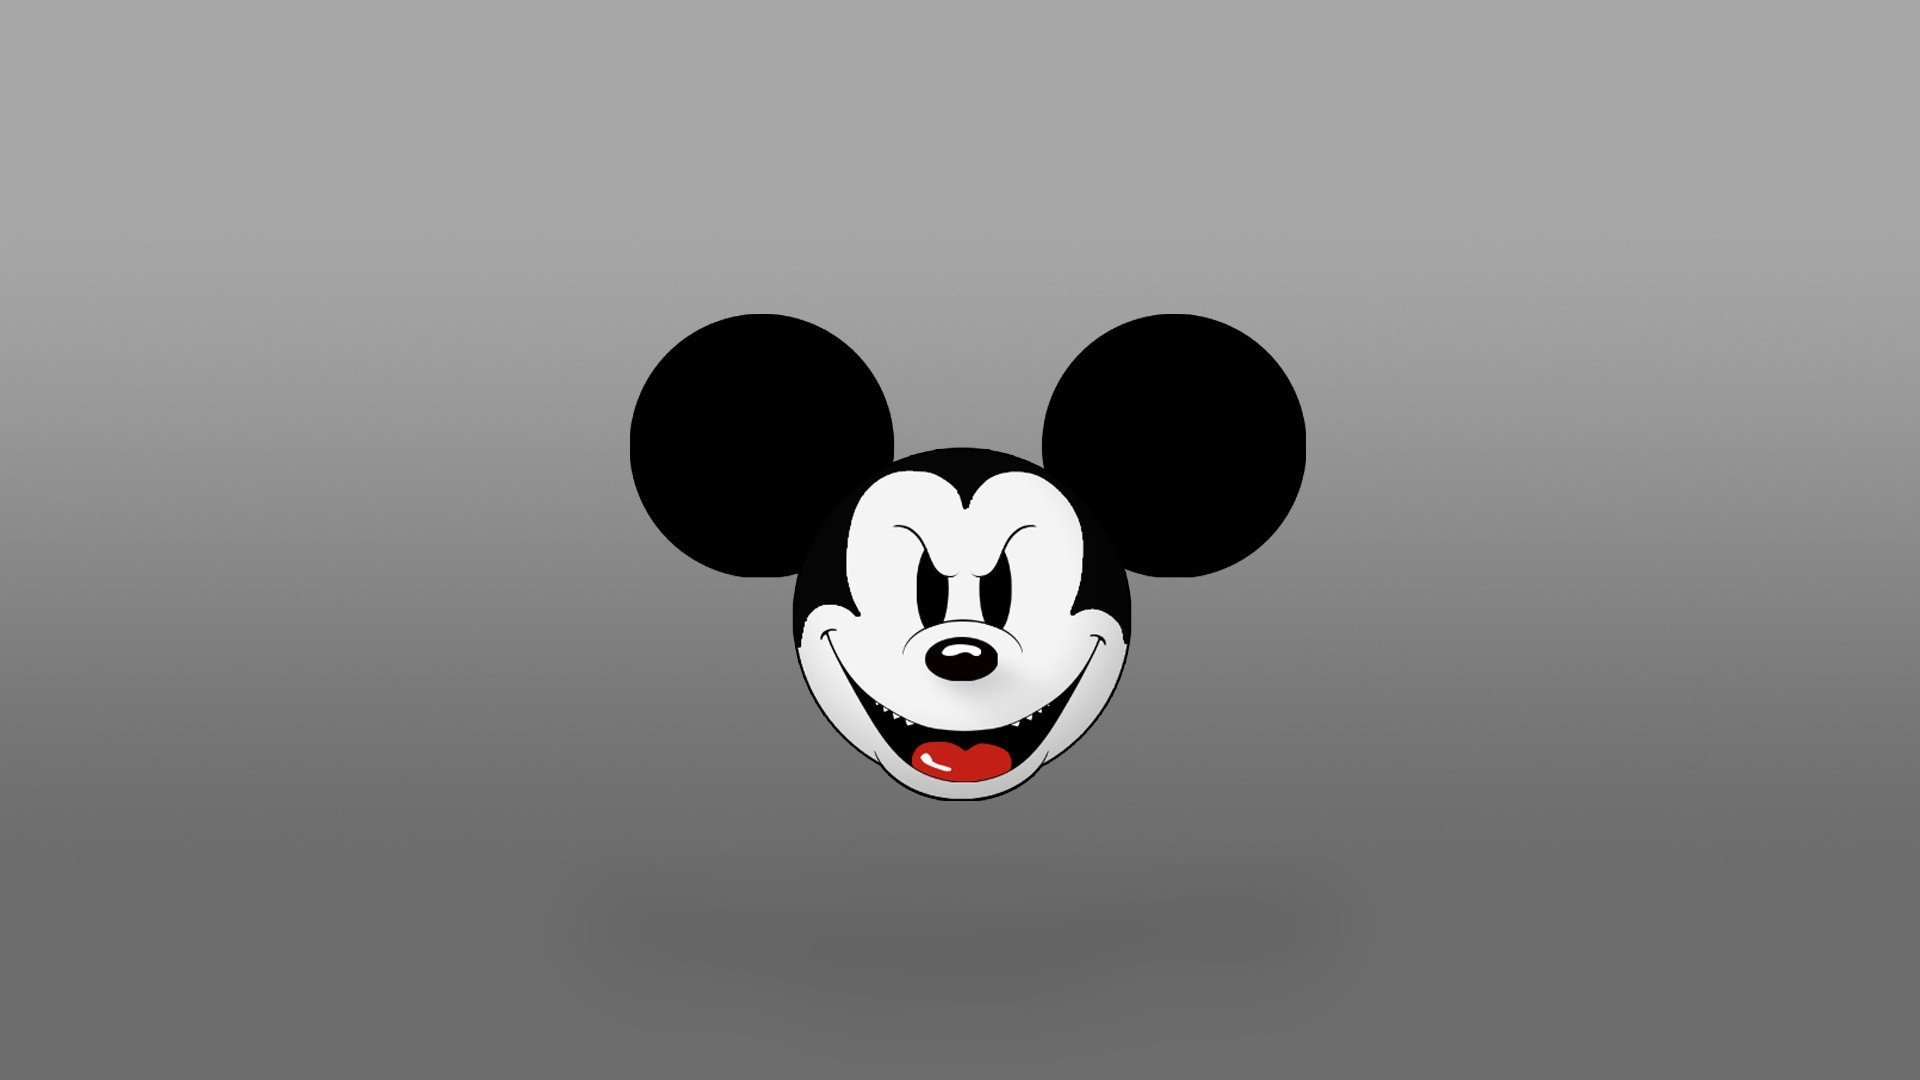 Disney mickey mouse hd wallpapers desktop and mobile - Mickey mouse hd wallpaper 1366x768 ...